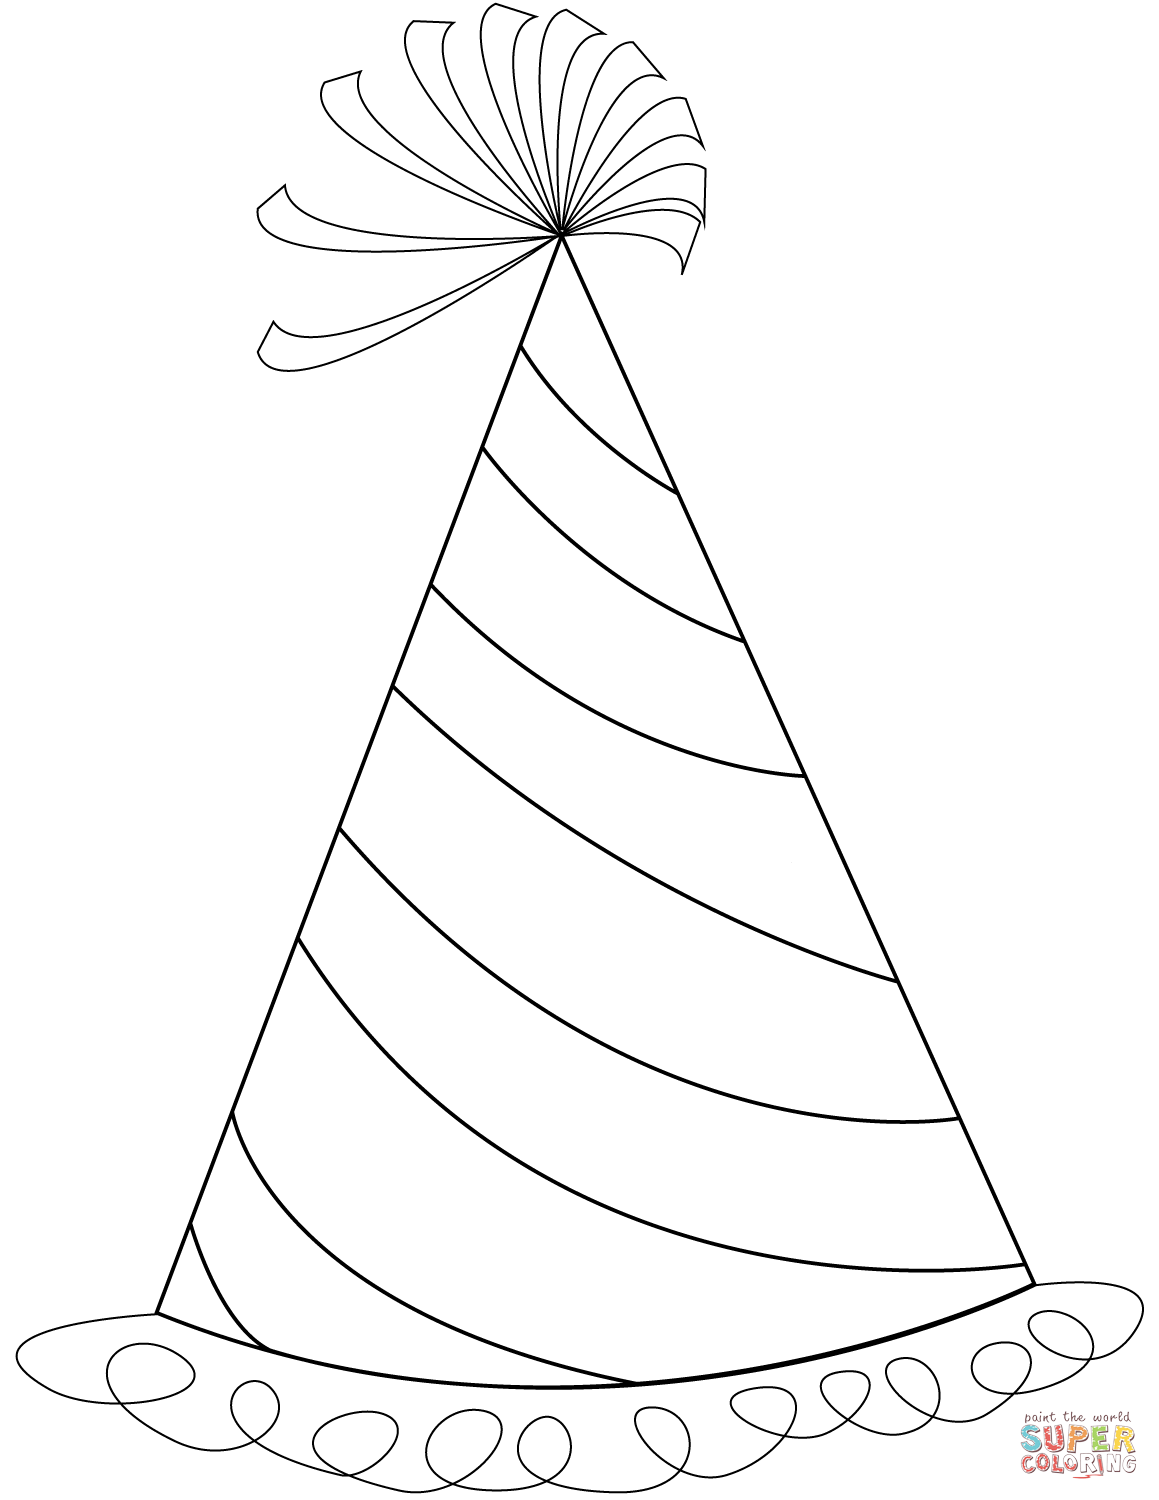 coloring pages of birthday hats happy birthday party hat coloring pages coloring hats pages birthday of coloring